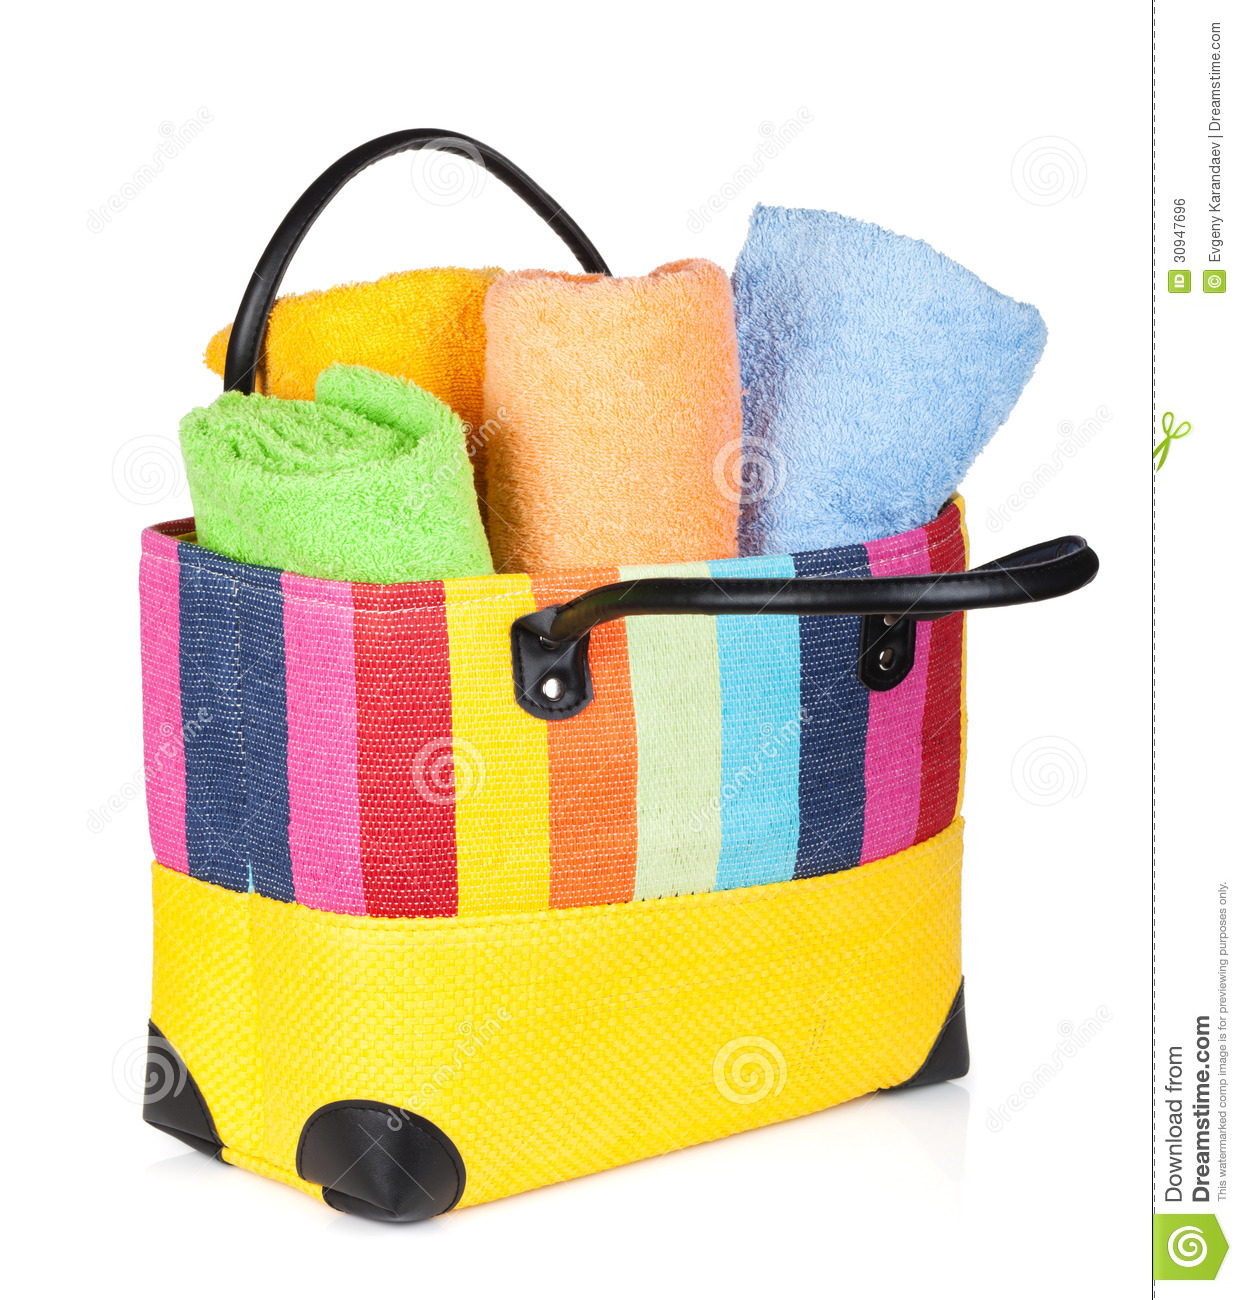 Colorful Beach Bag With Towels Royalty Free Stock Image - Image ...